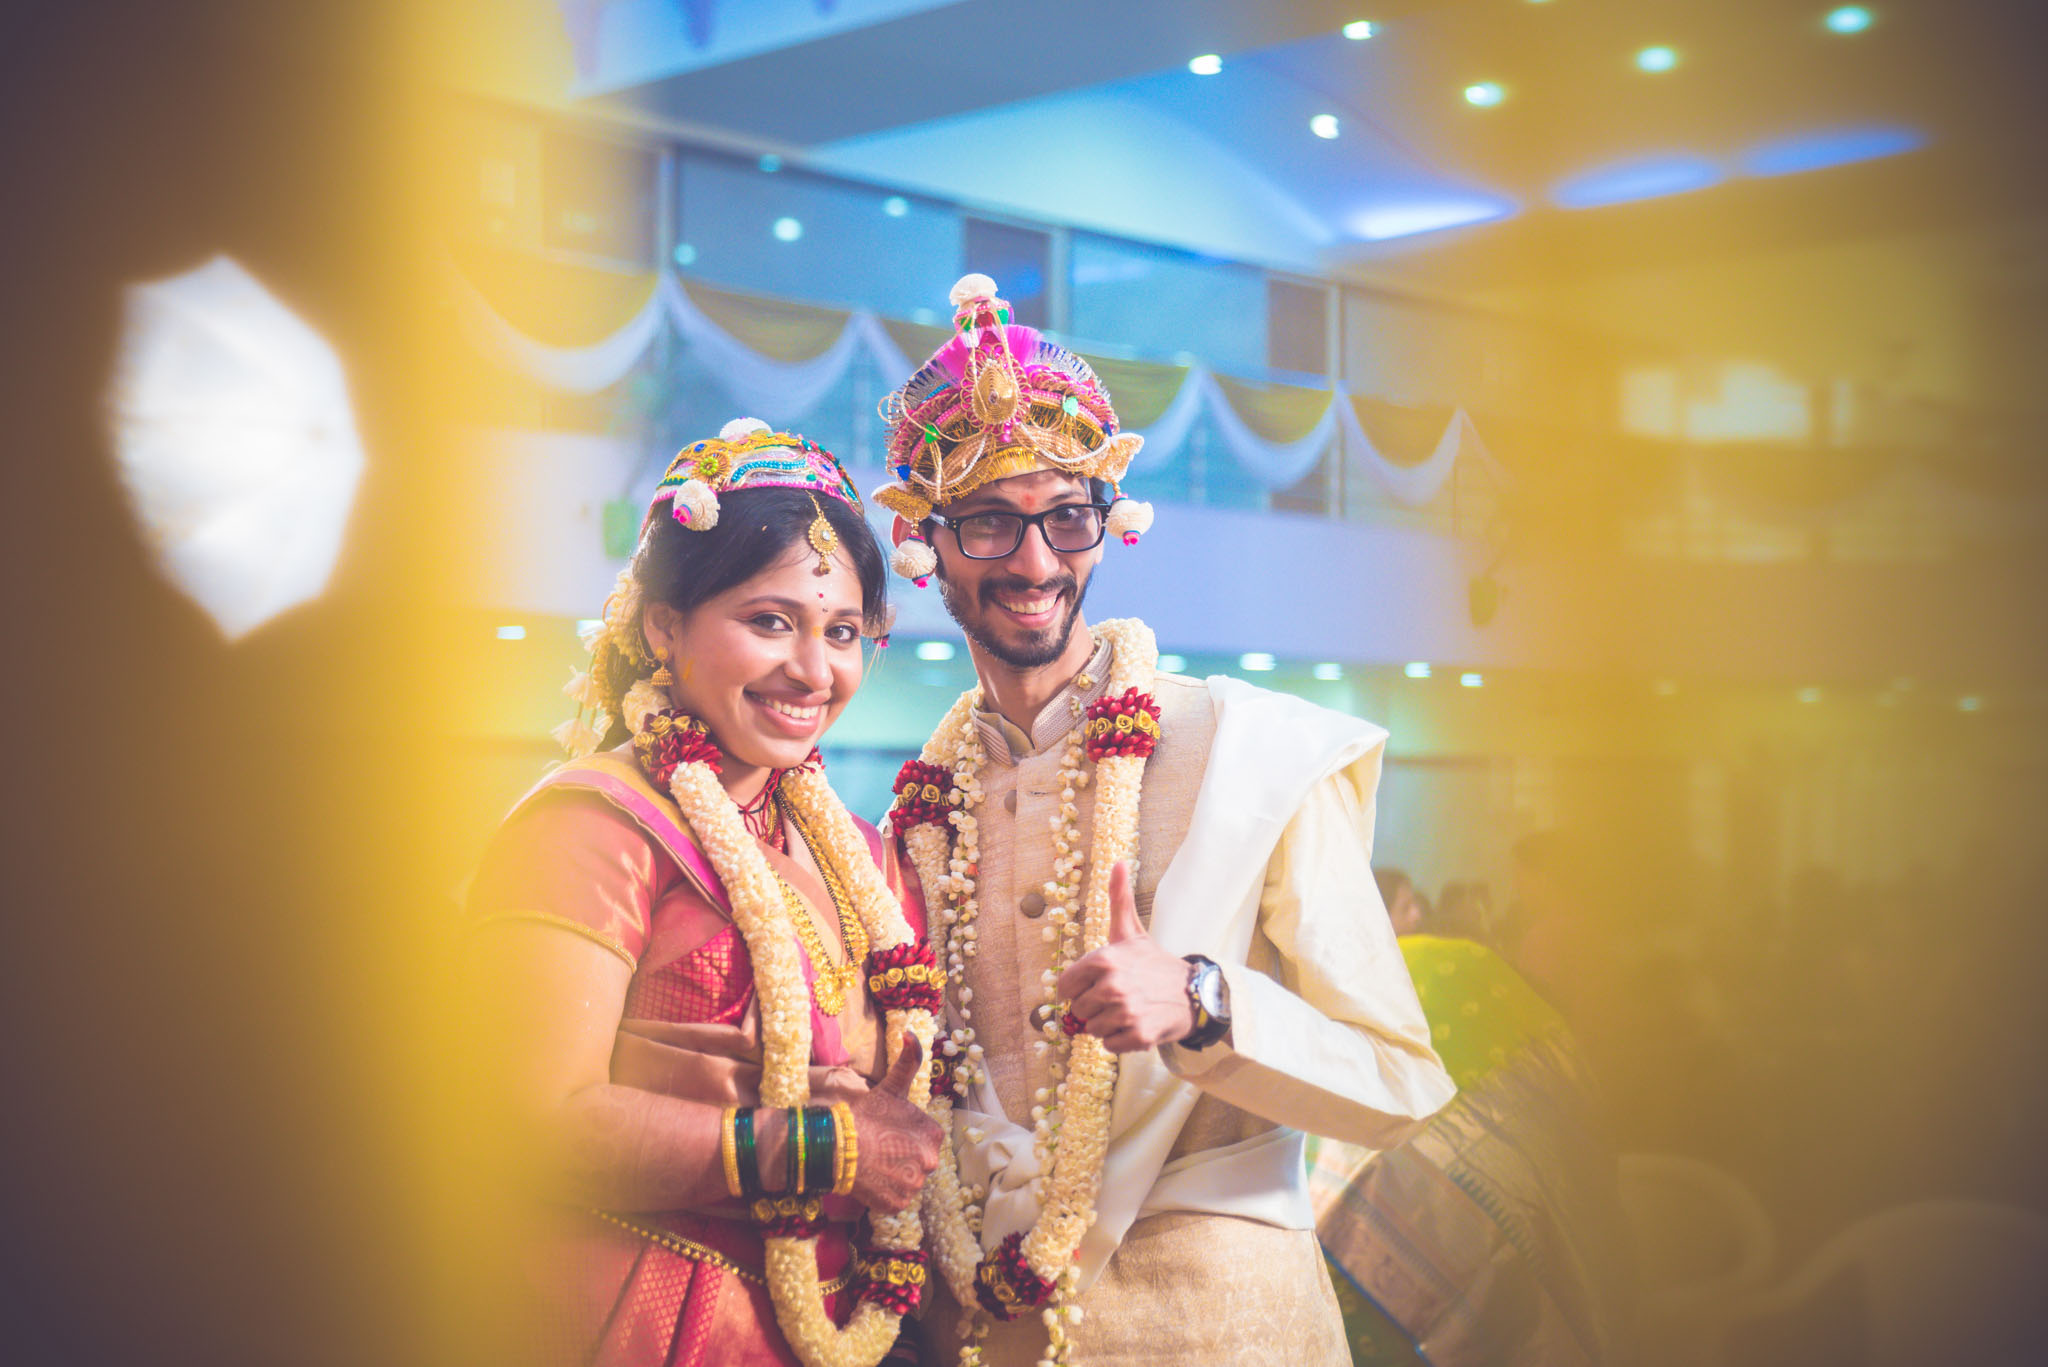 WhatKnot-Candid-Wedding-Photography-Mumbai-Bangalore-199